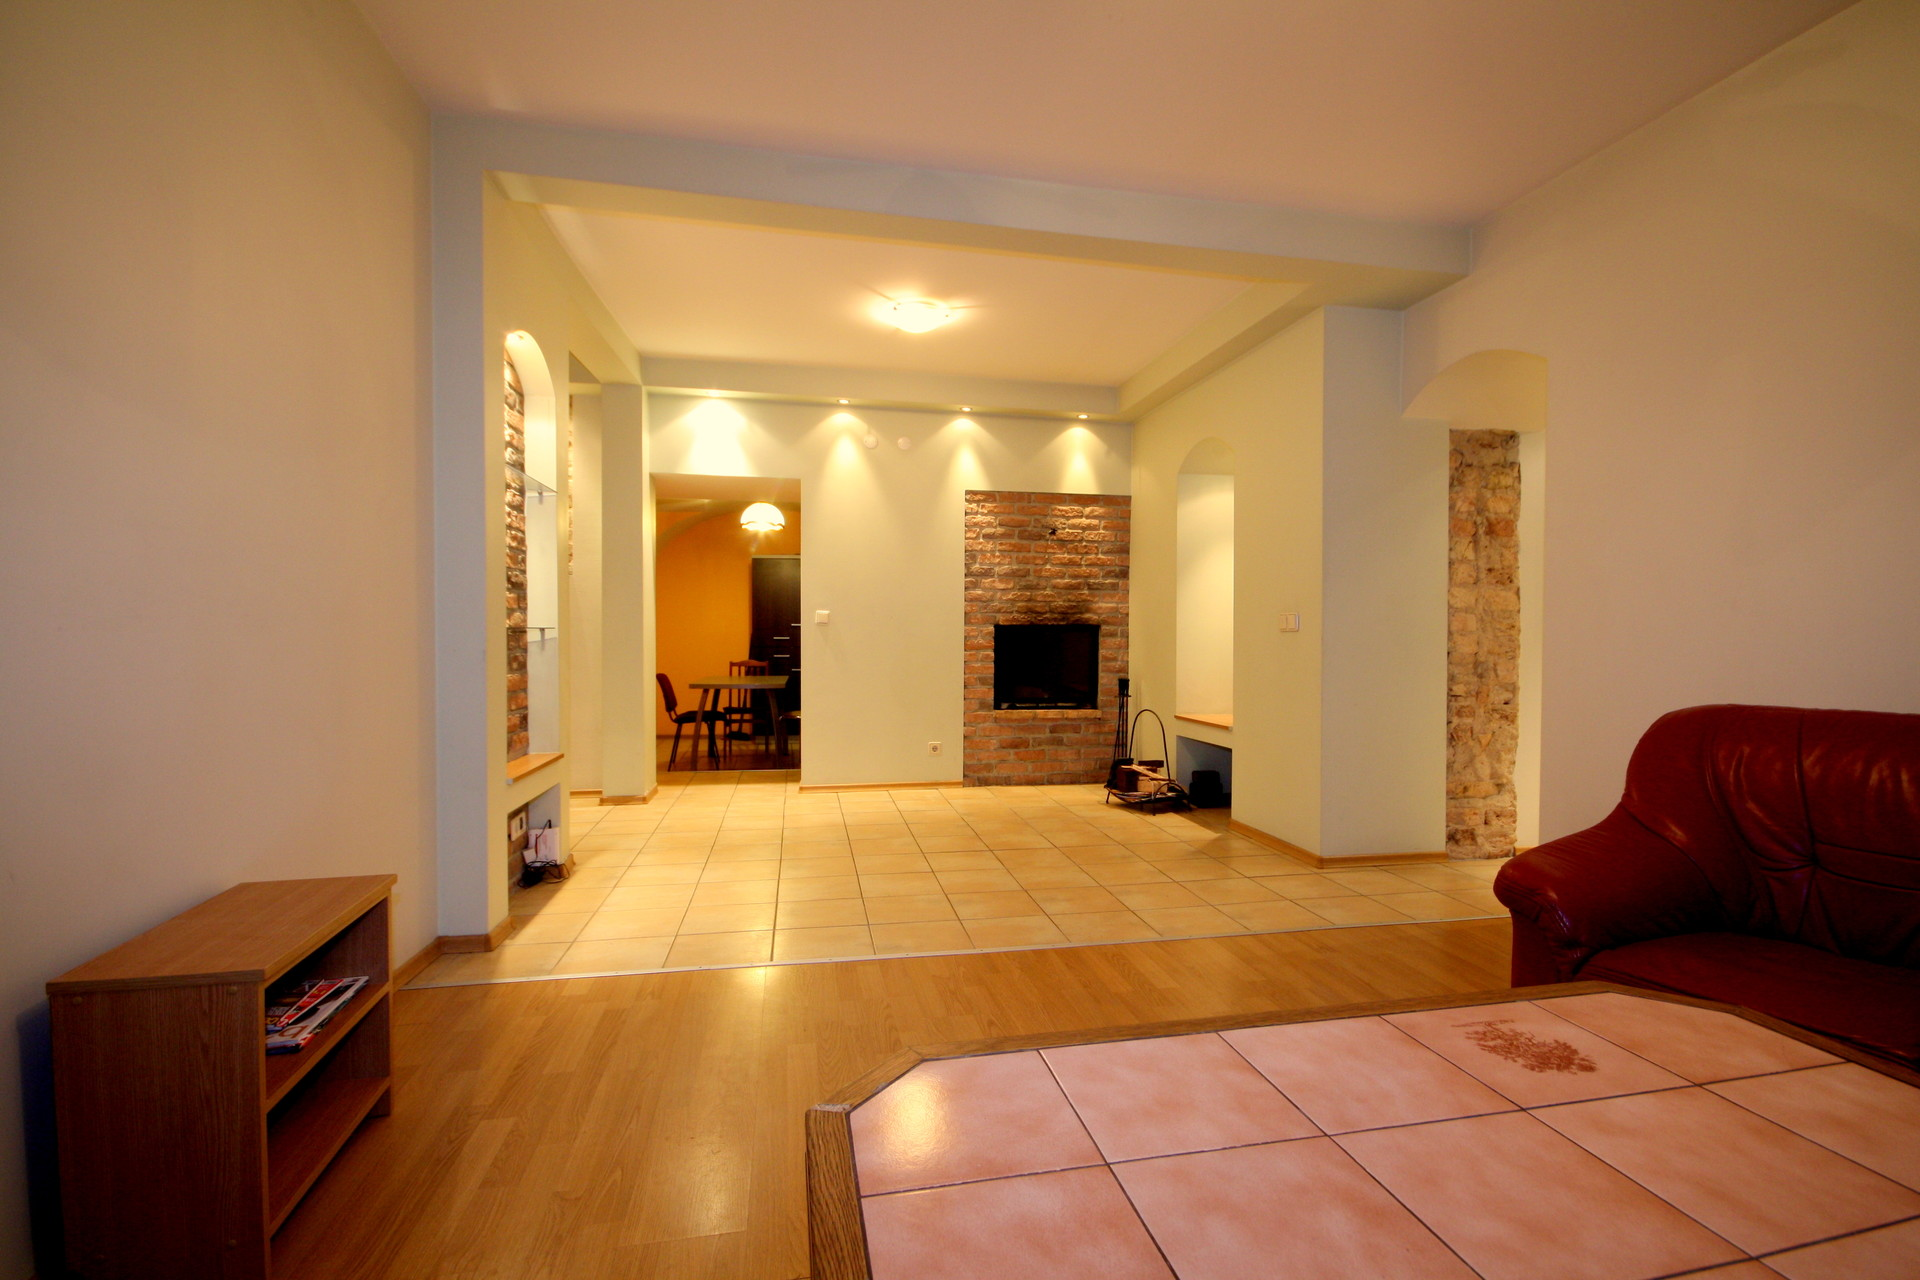 pilies-apartment-old-town-vilnius-3dabe3df5a74d9f33aac14fd7bfb134a